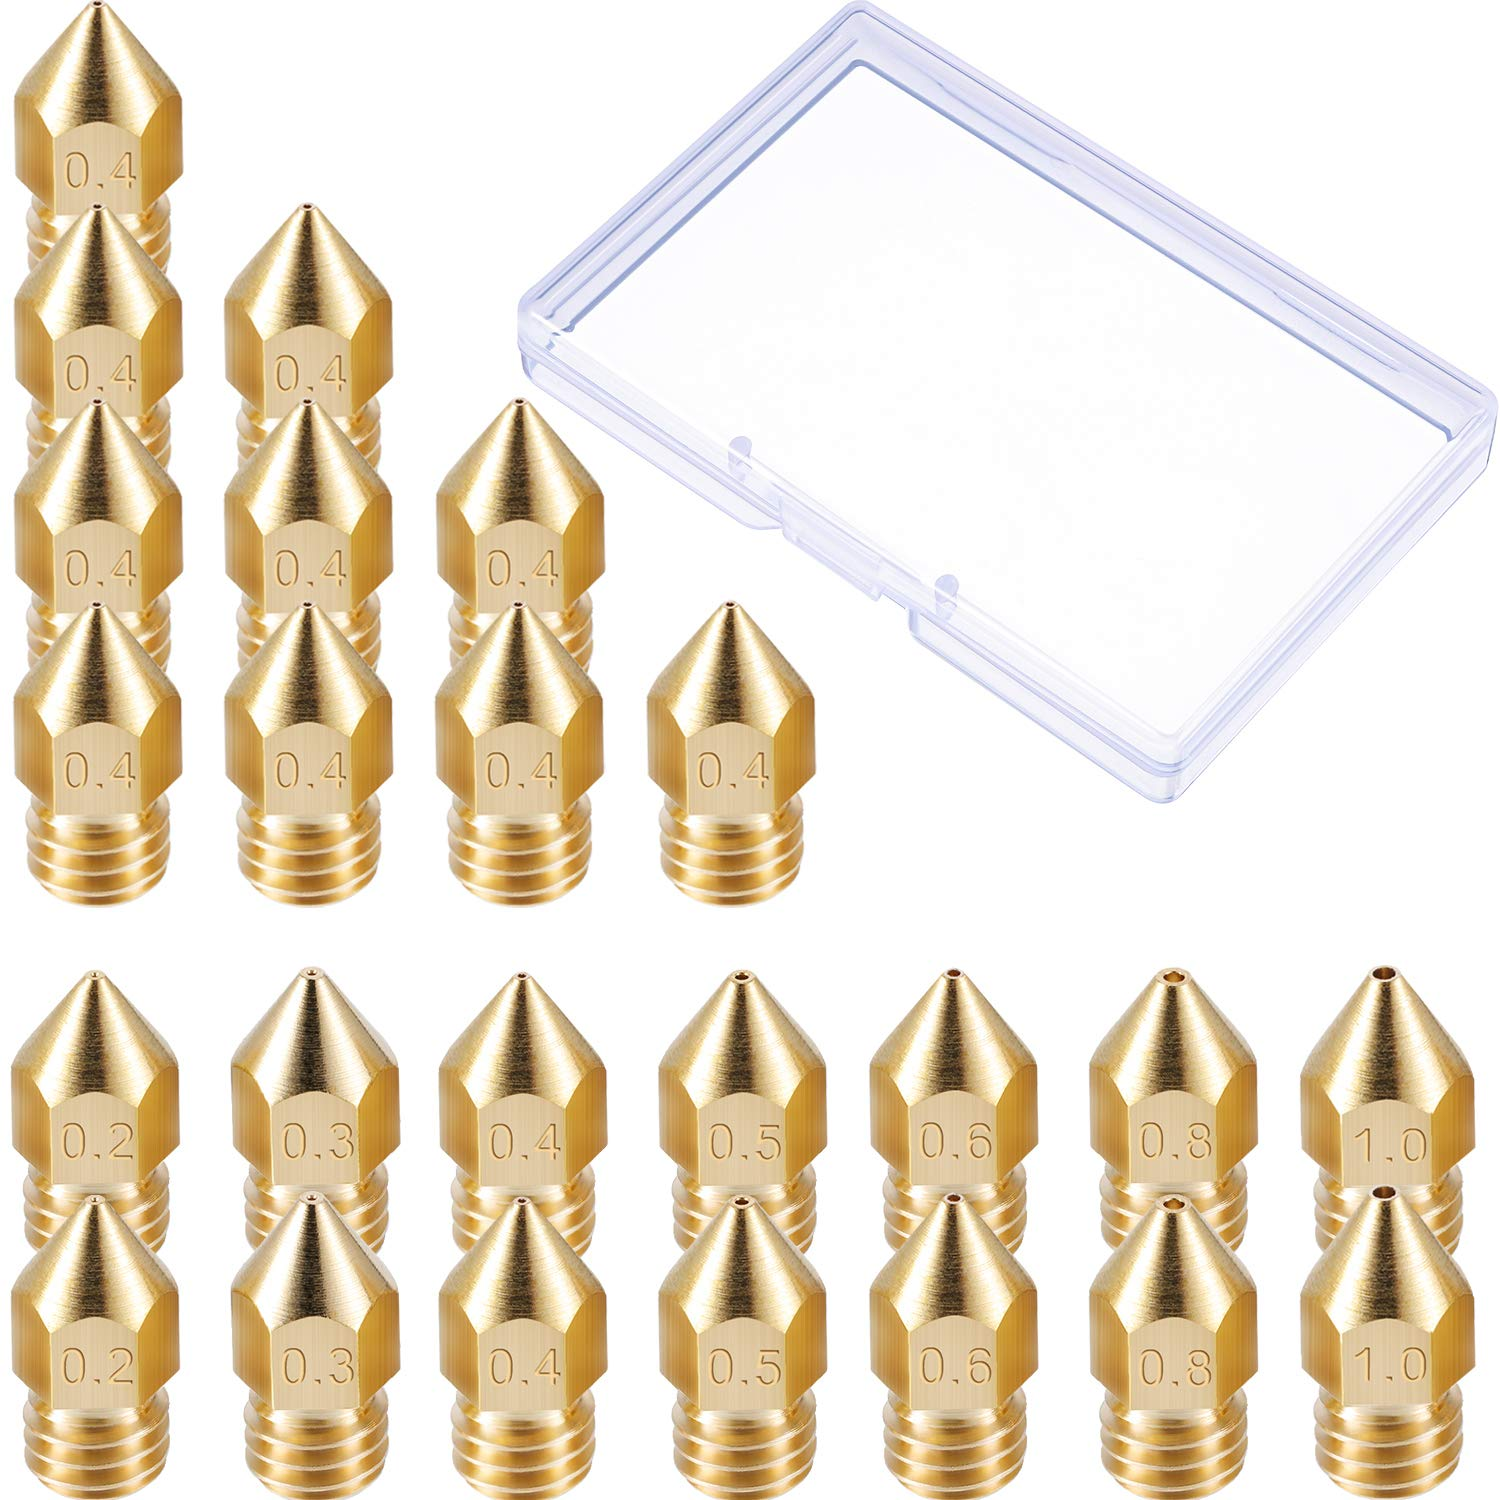 0.3 mm 0.8 mm Leinuosen 24 Pack 3D Printer Extruder Nozzles MK8 Nozzle 7 Different Size 0.2 mm 0.6 mm 0.4 mm 1.0 mm with Clean Box Compatible with Makerbot Creality CR-10 0.5 mm